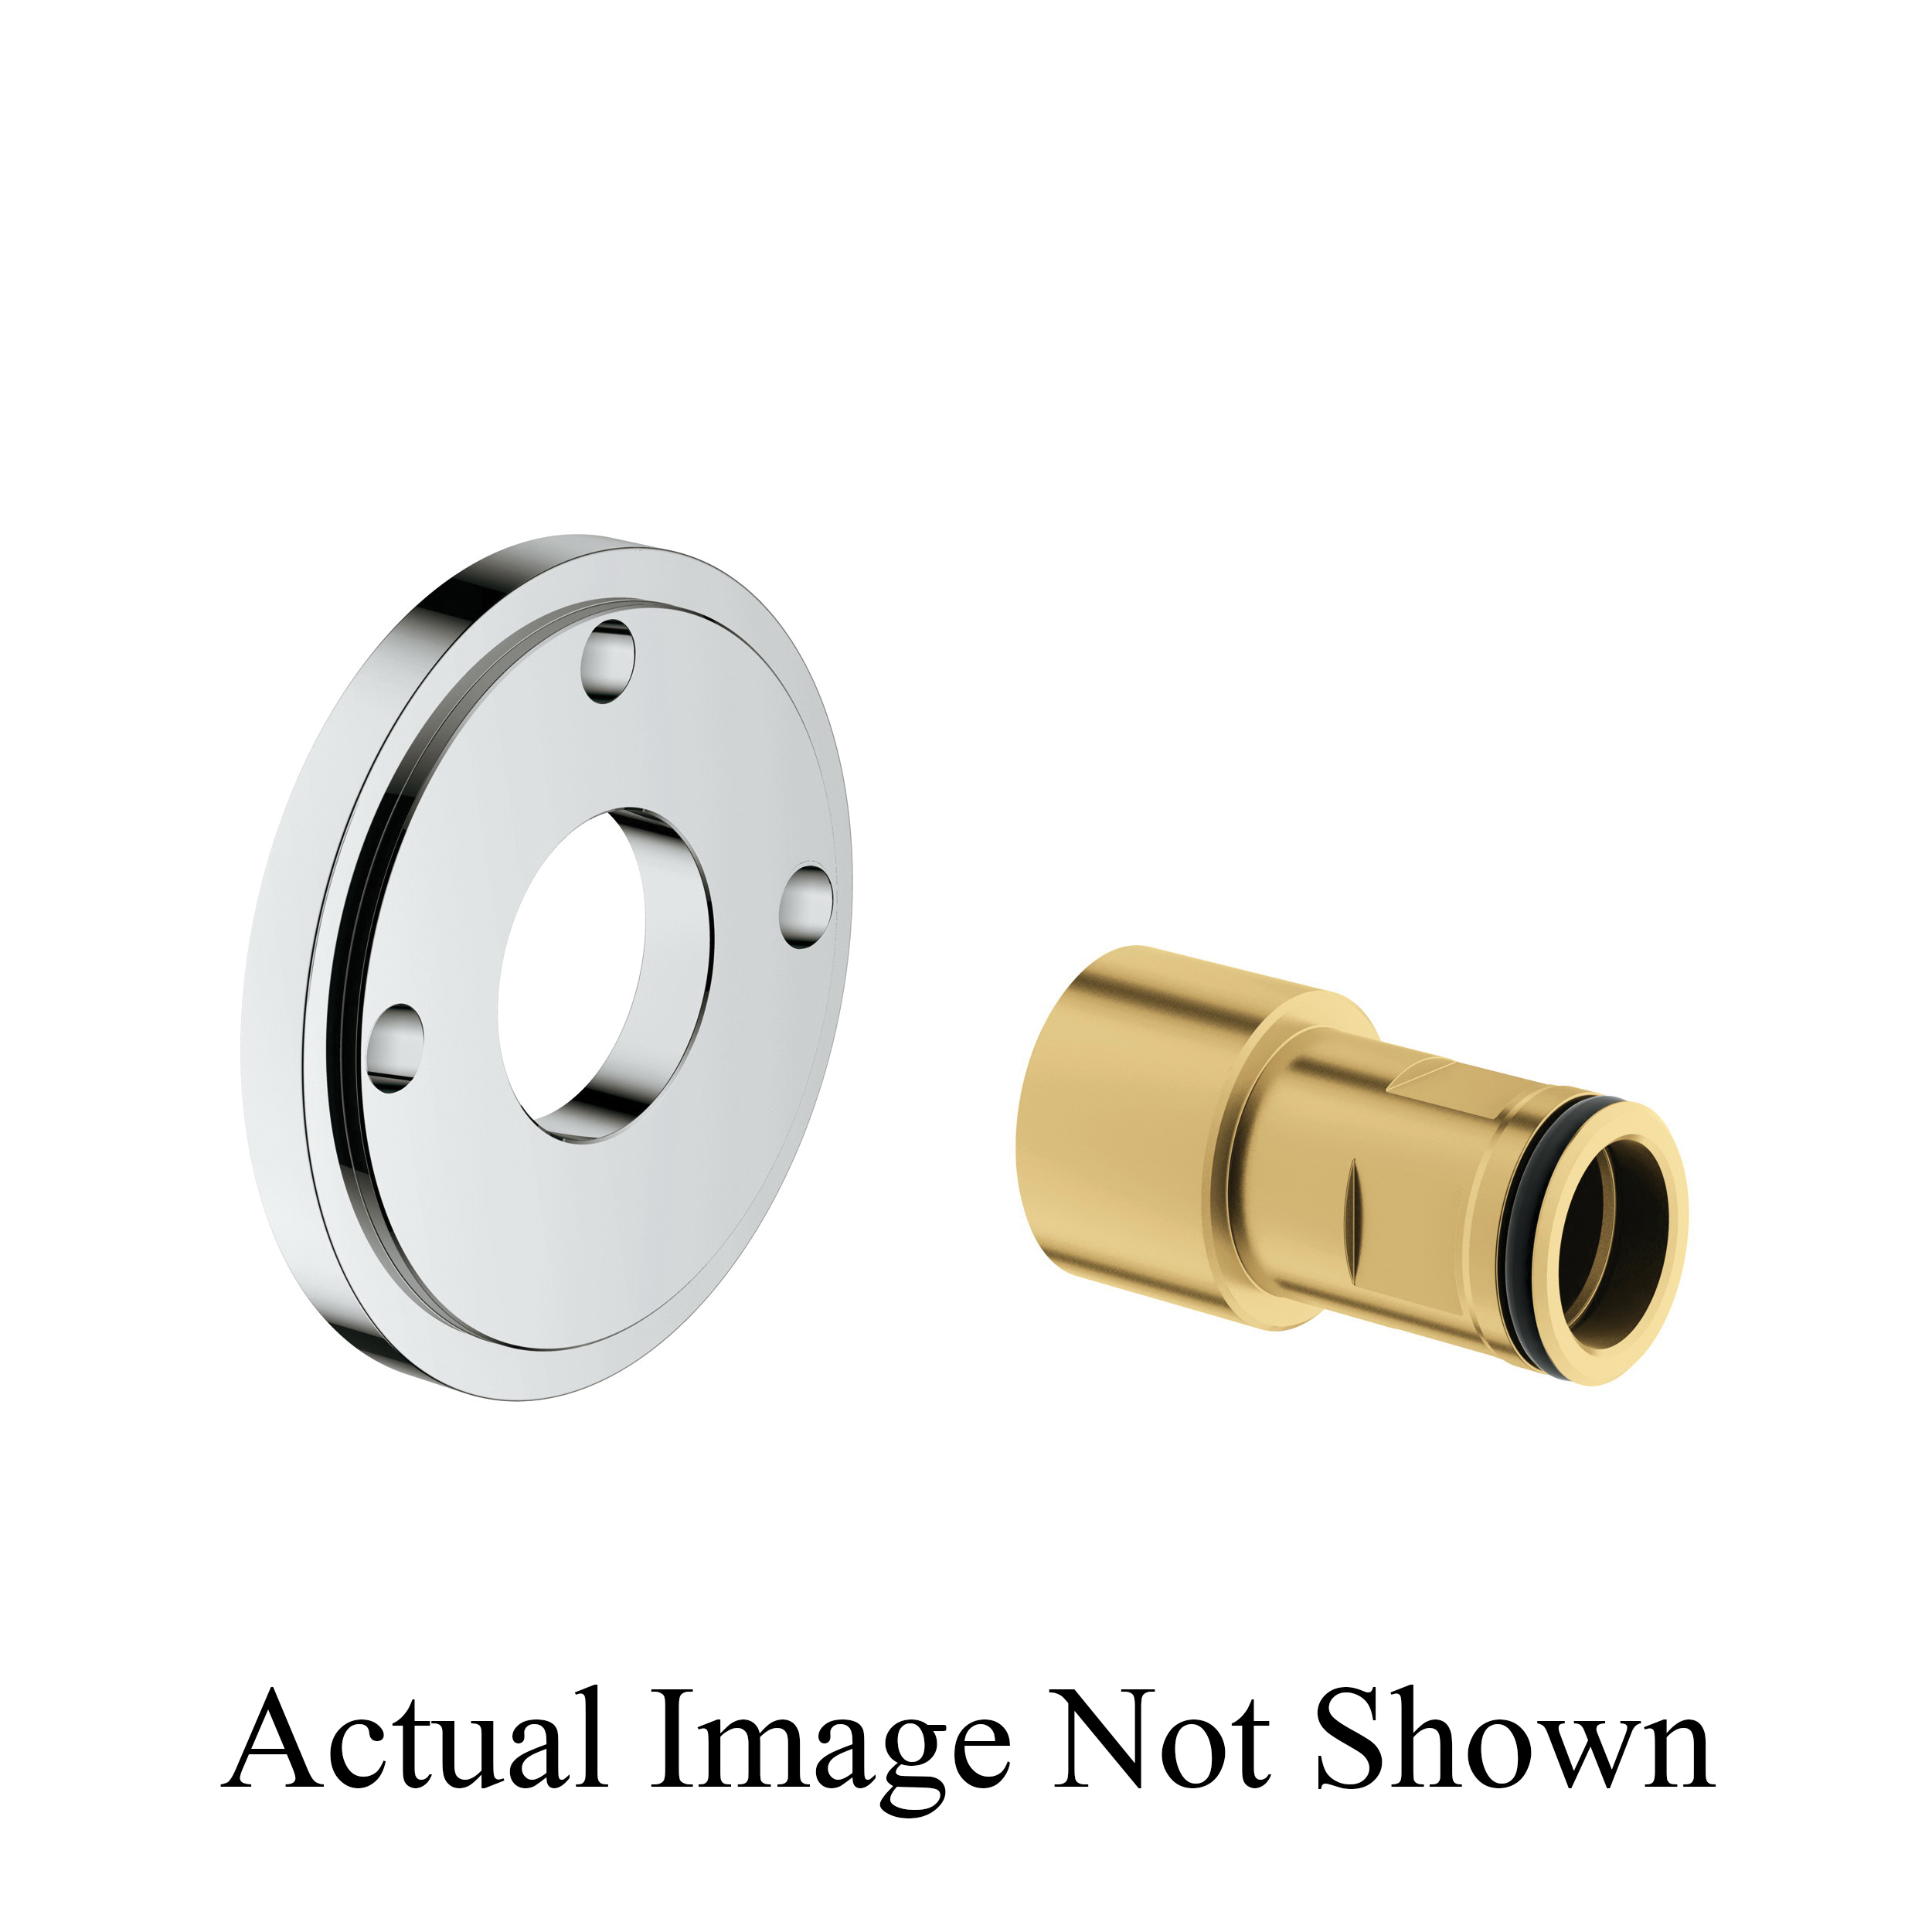 GROHE 26030000 Spacer, For Use With Retro-Fit Shower System, StarLight® Chrome, Import